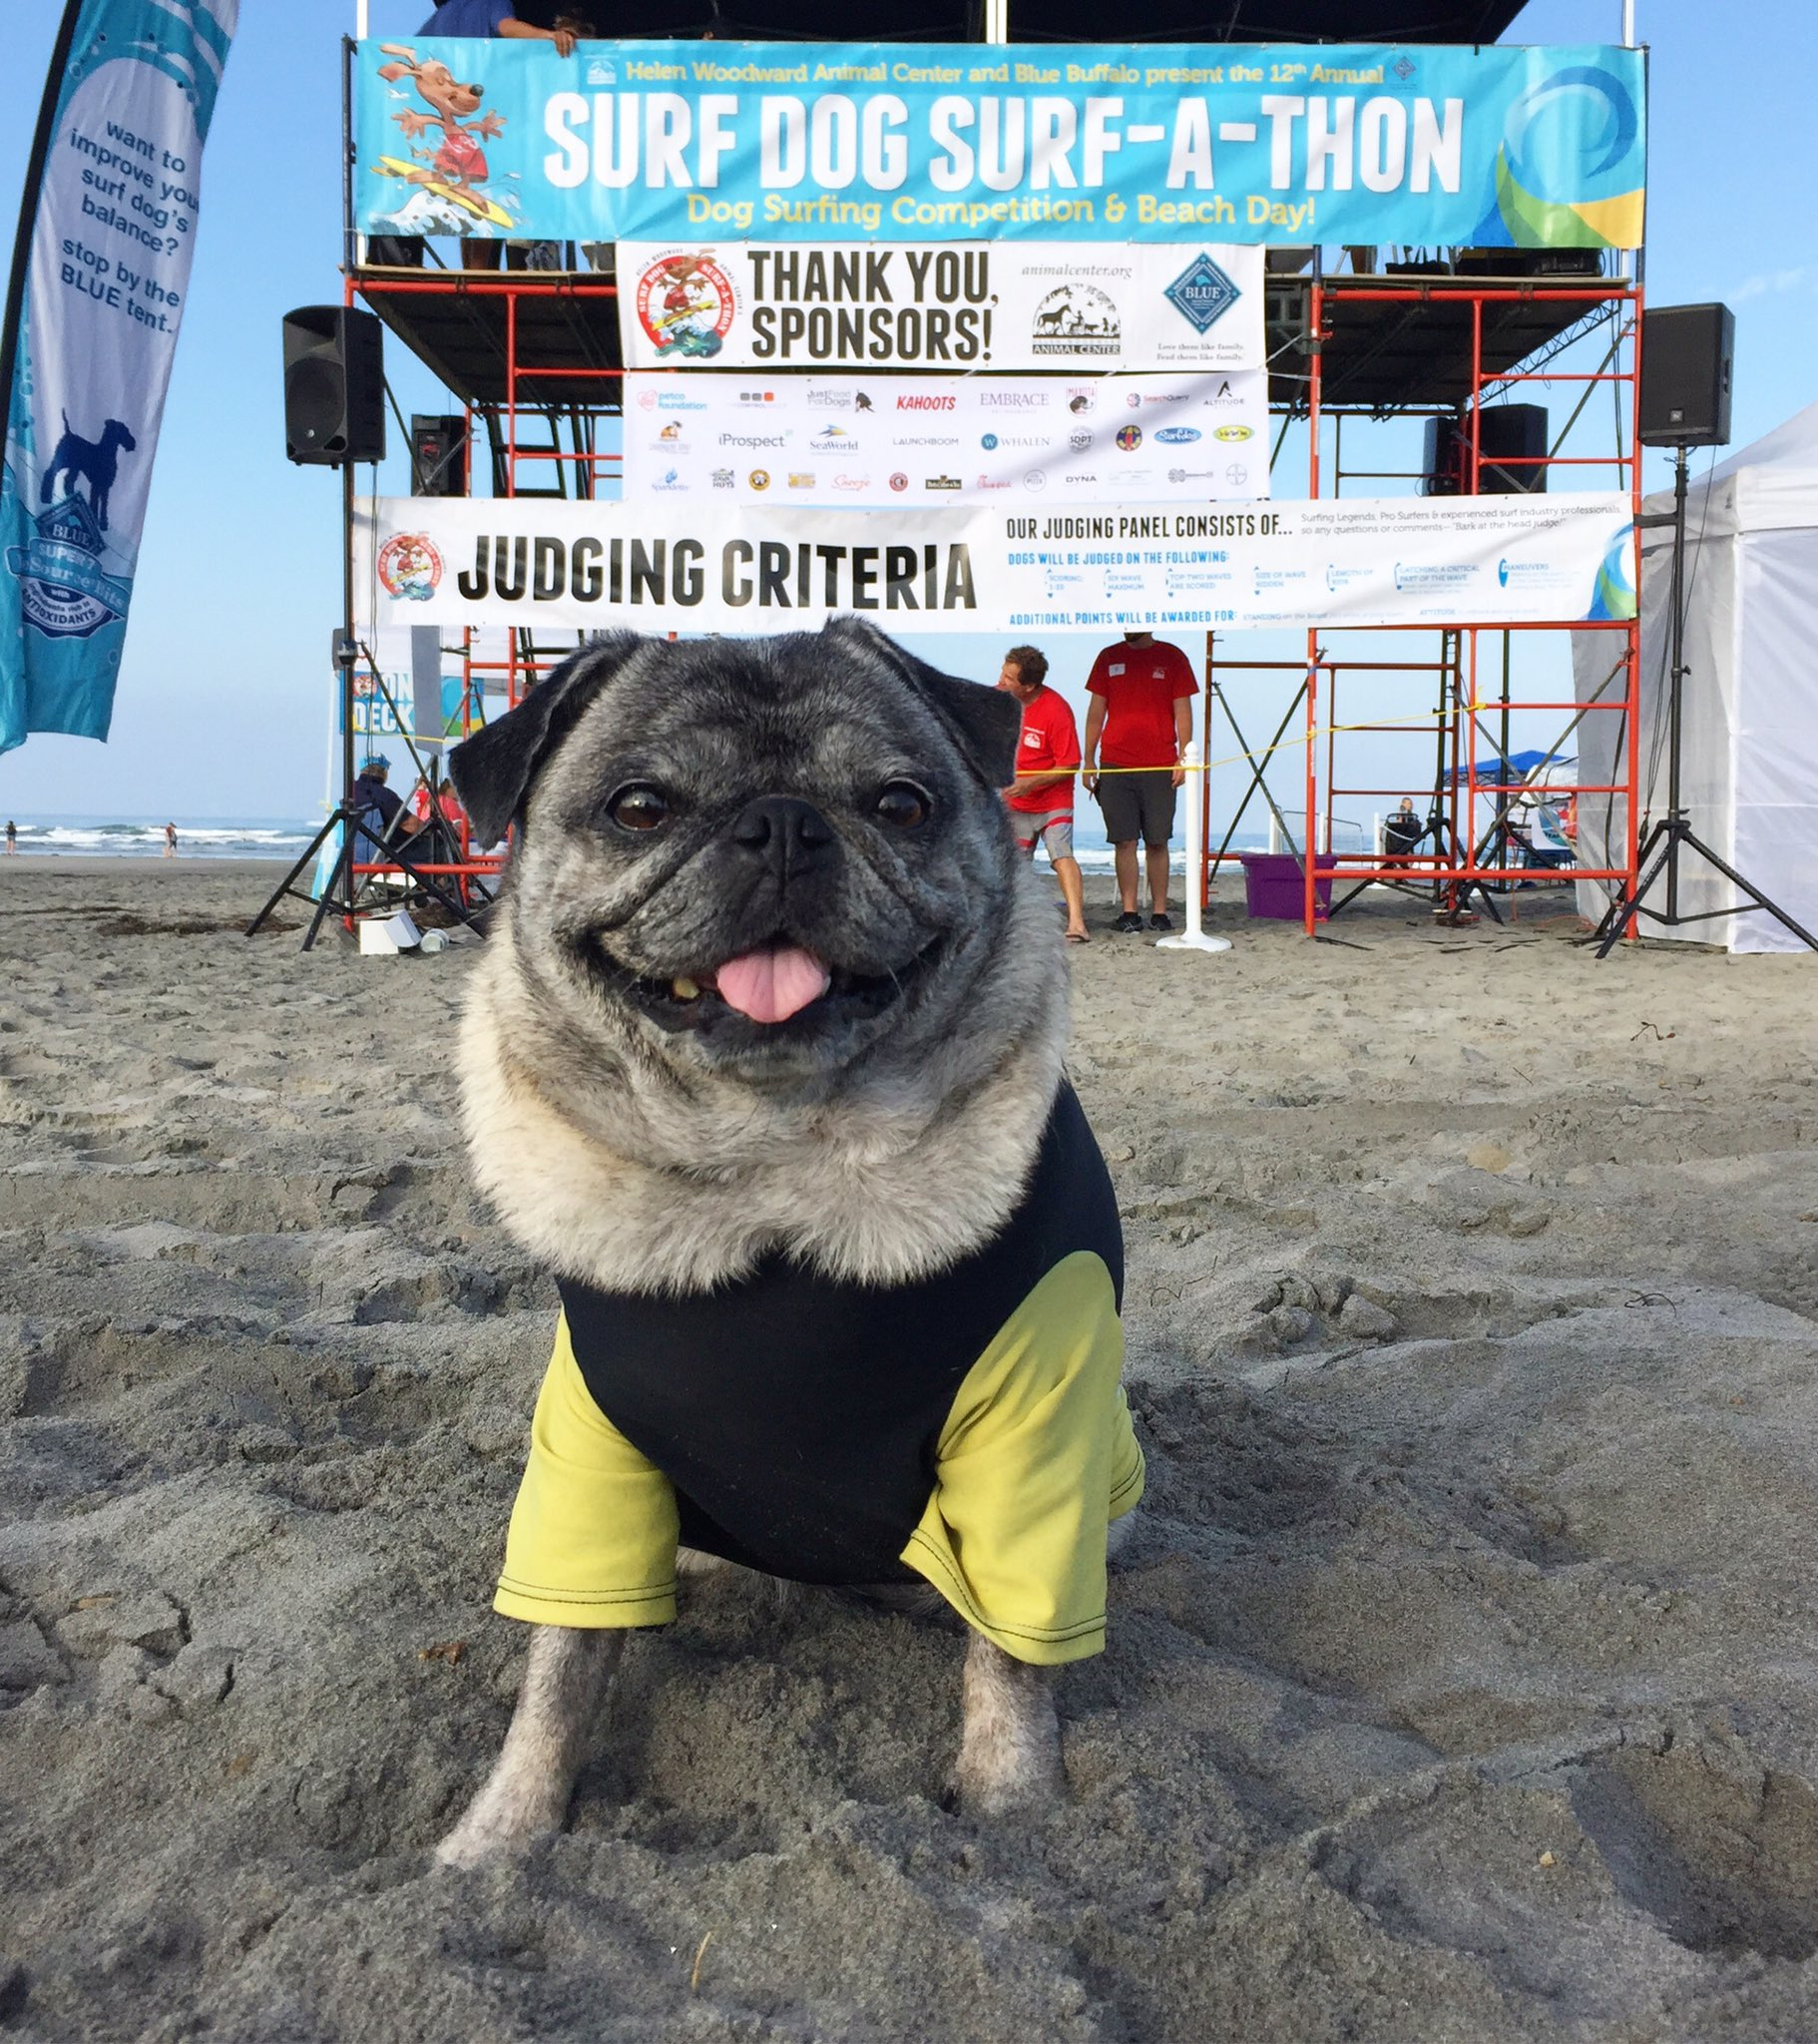 Brandy The Pug On Twitter Its About To Go Down Ready To Surf - Brandy the award winning surfing pug